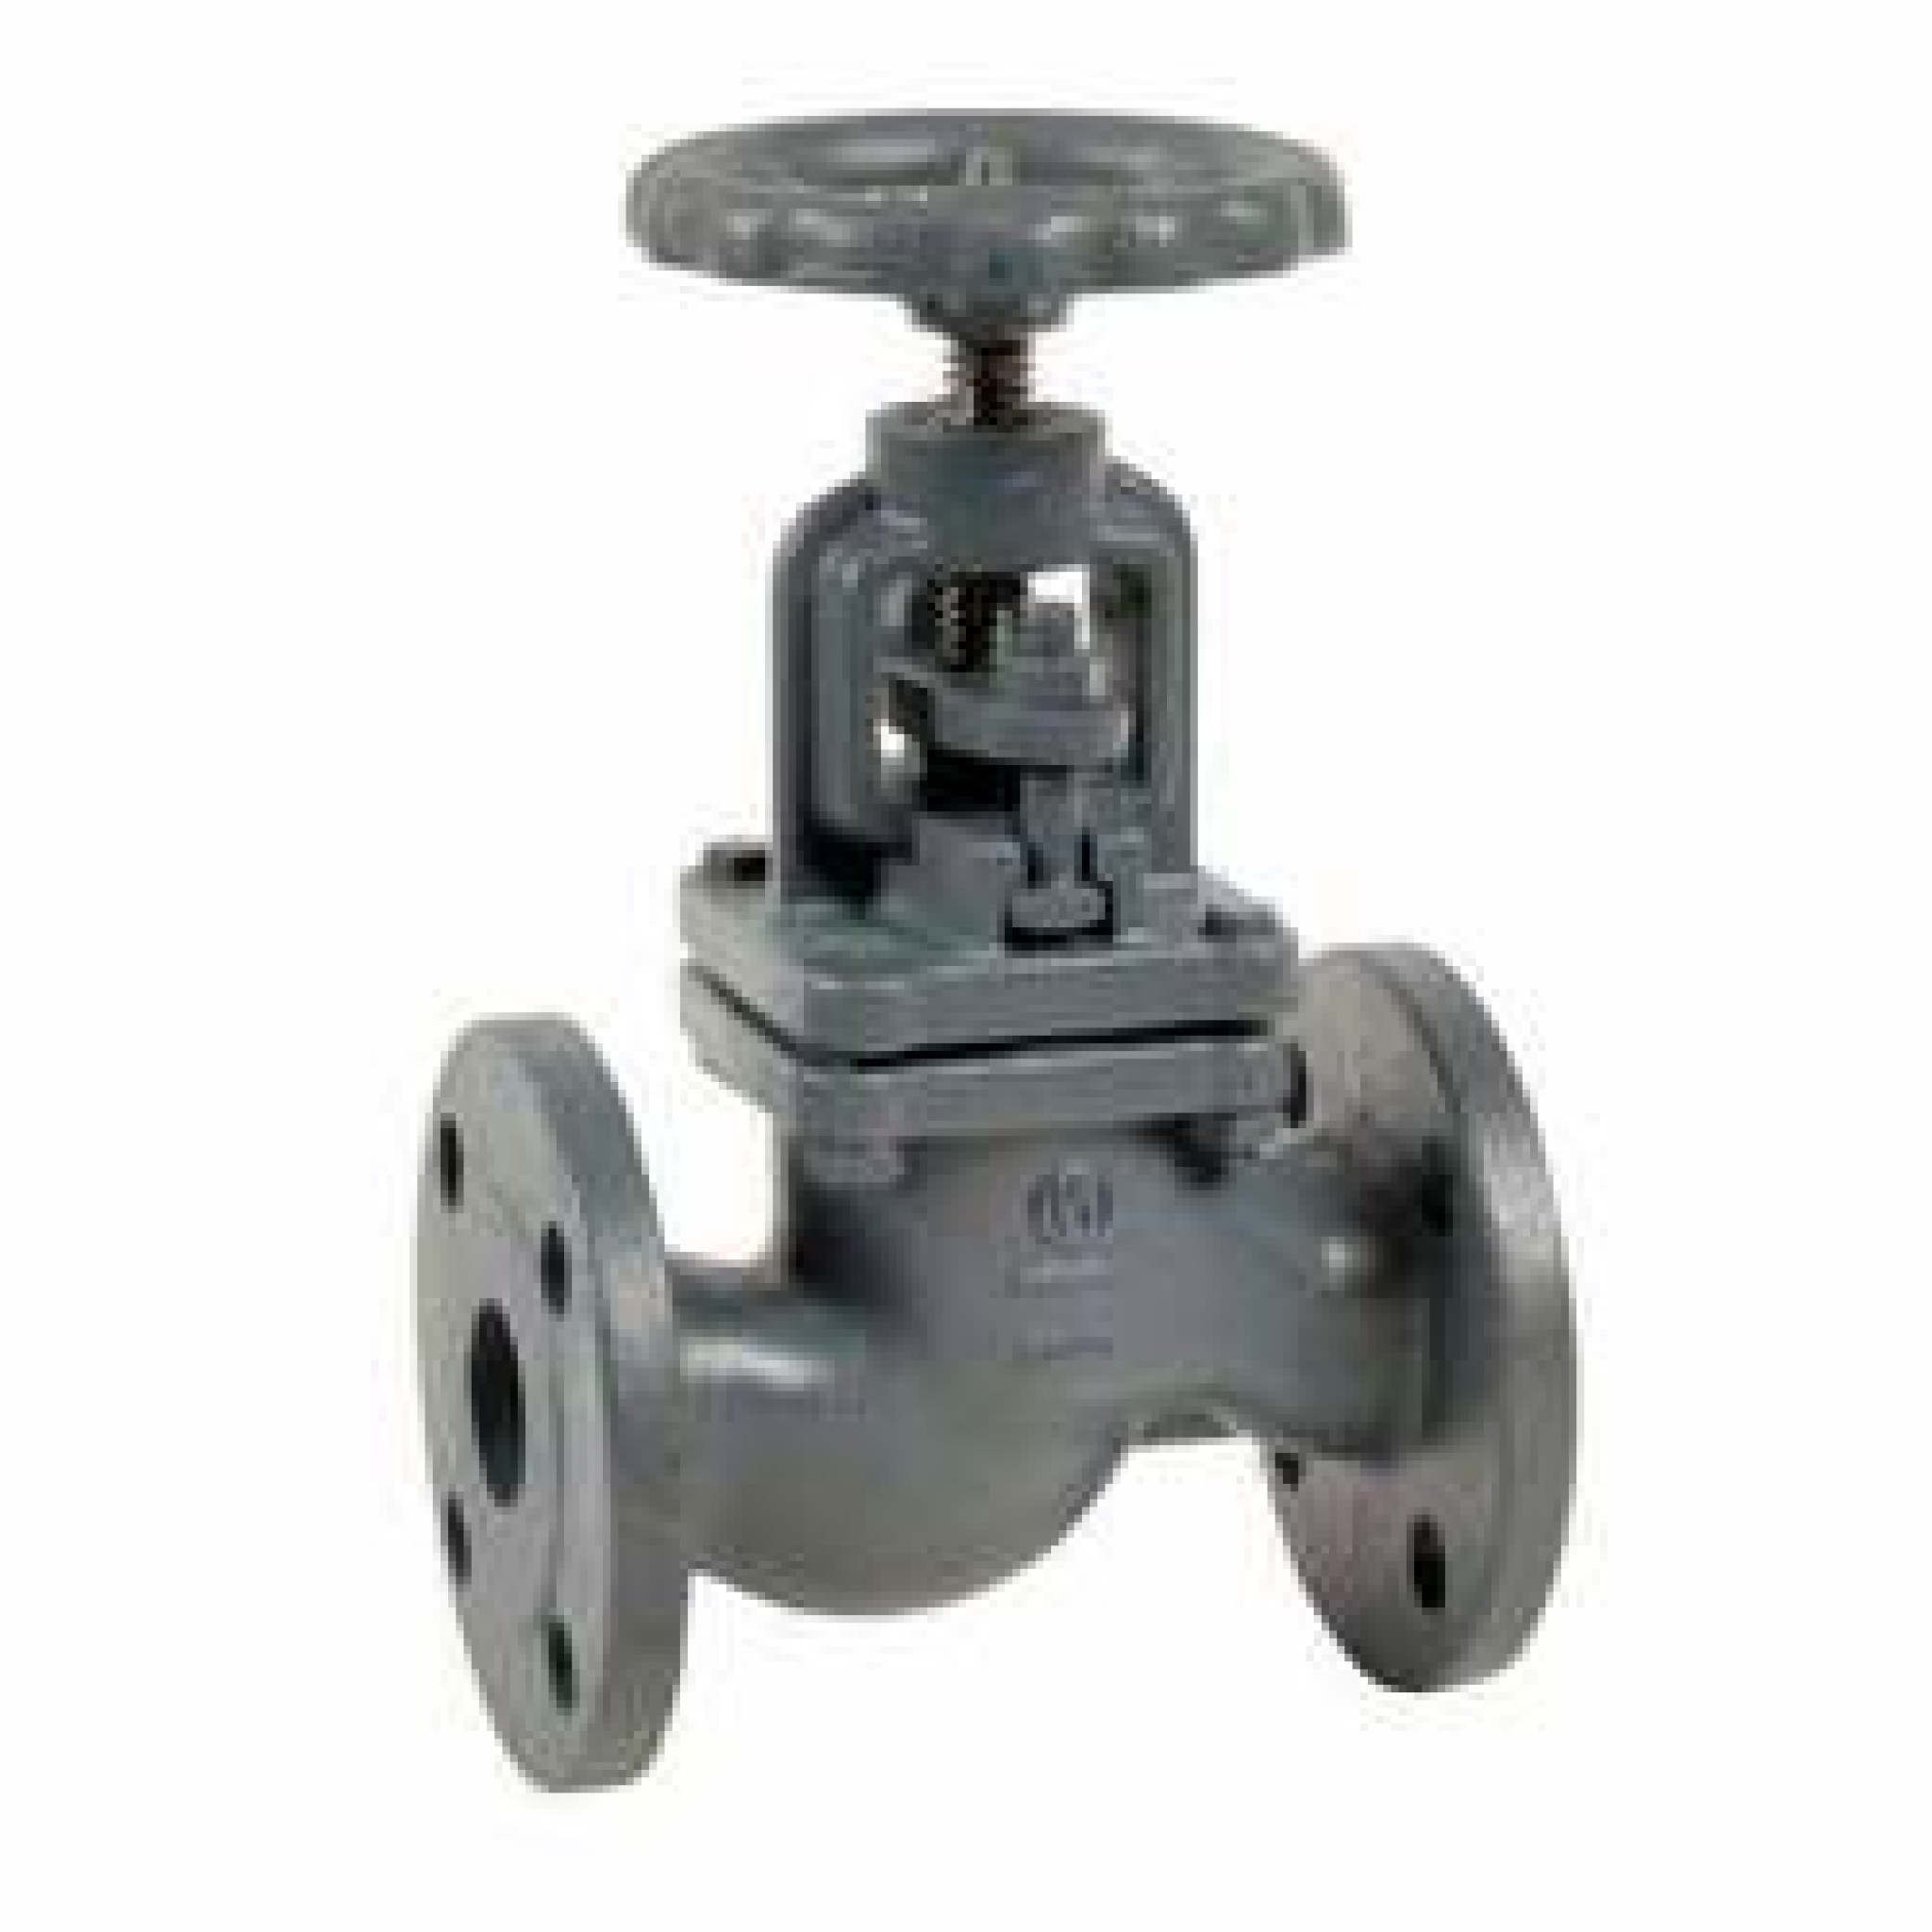 globe-valve-globe-valve-pn16-flanged-cast-iron-water-and-heating-1_250x_crop_top.jpg